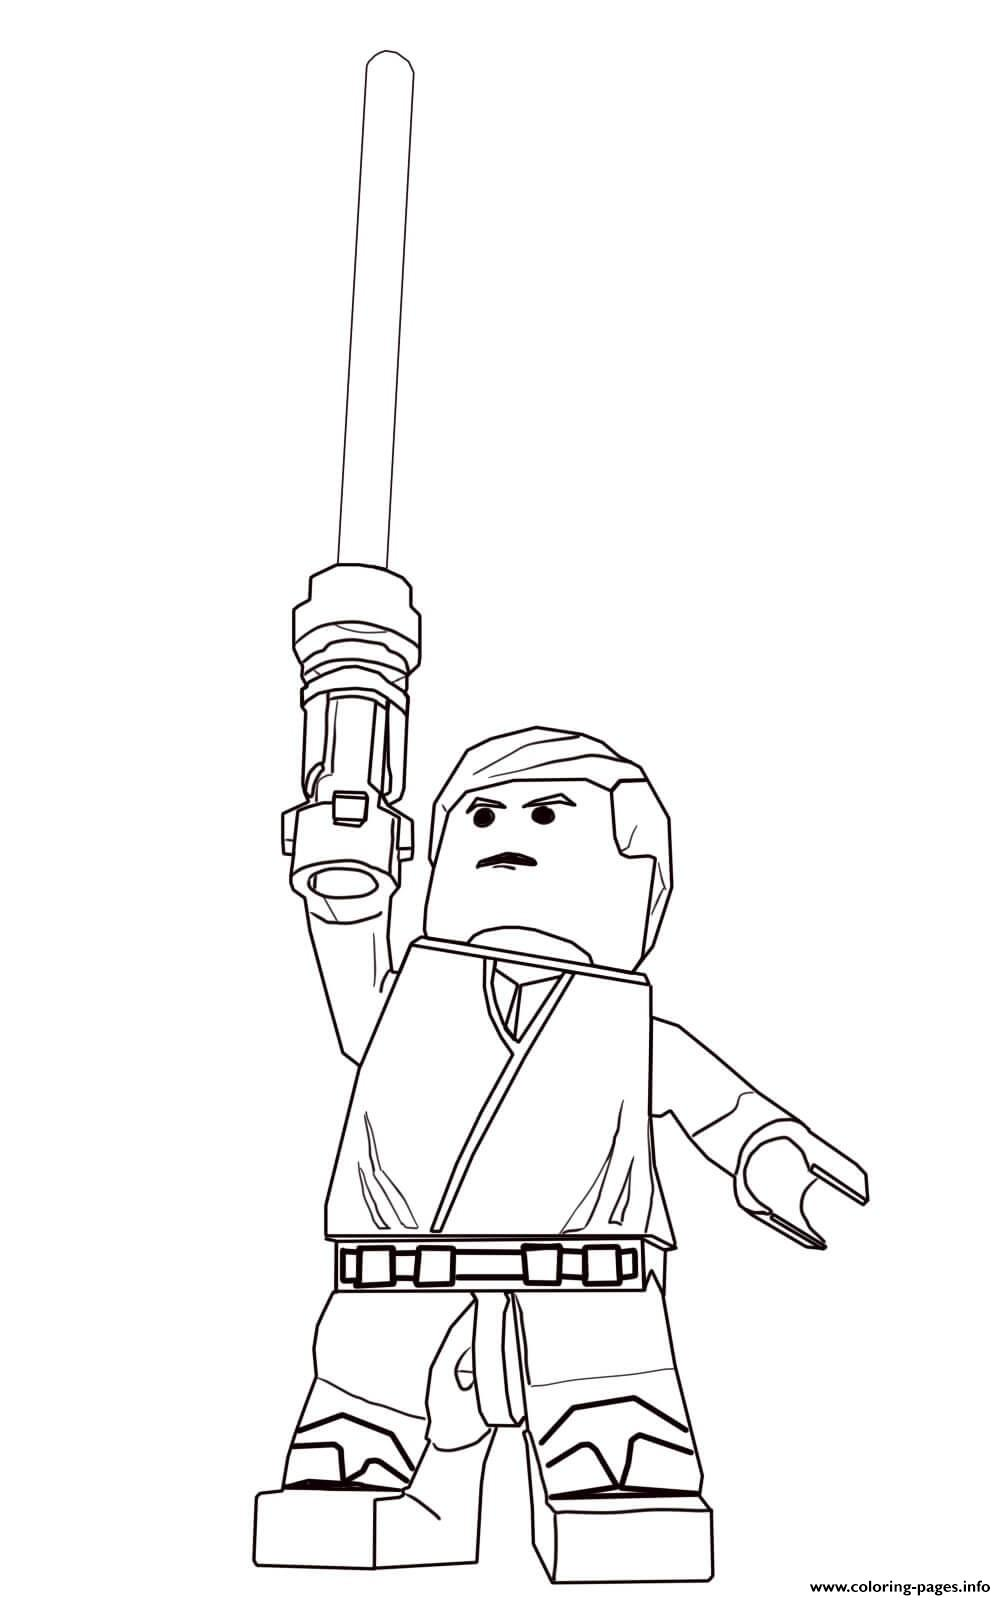 Free Coloring Pages Captain Rex - Coloring Home | 1600x1006